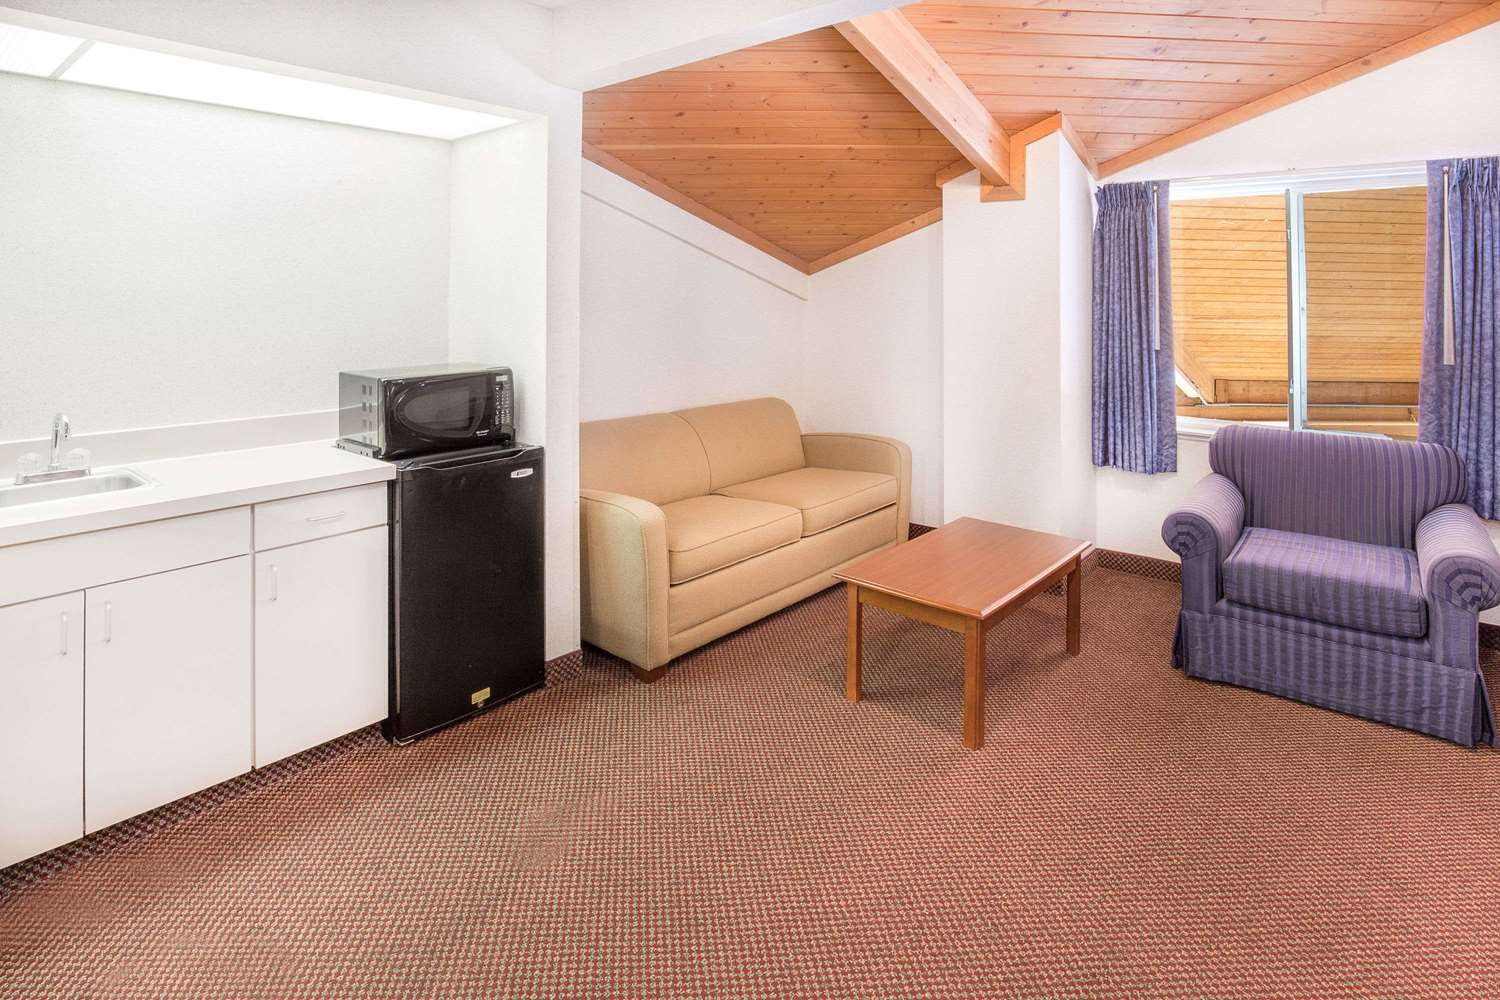 Baymont Inn Amp Suites Willows Ca See Discounts